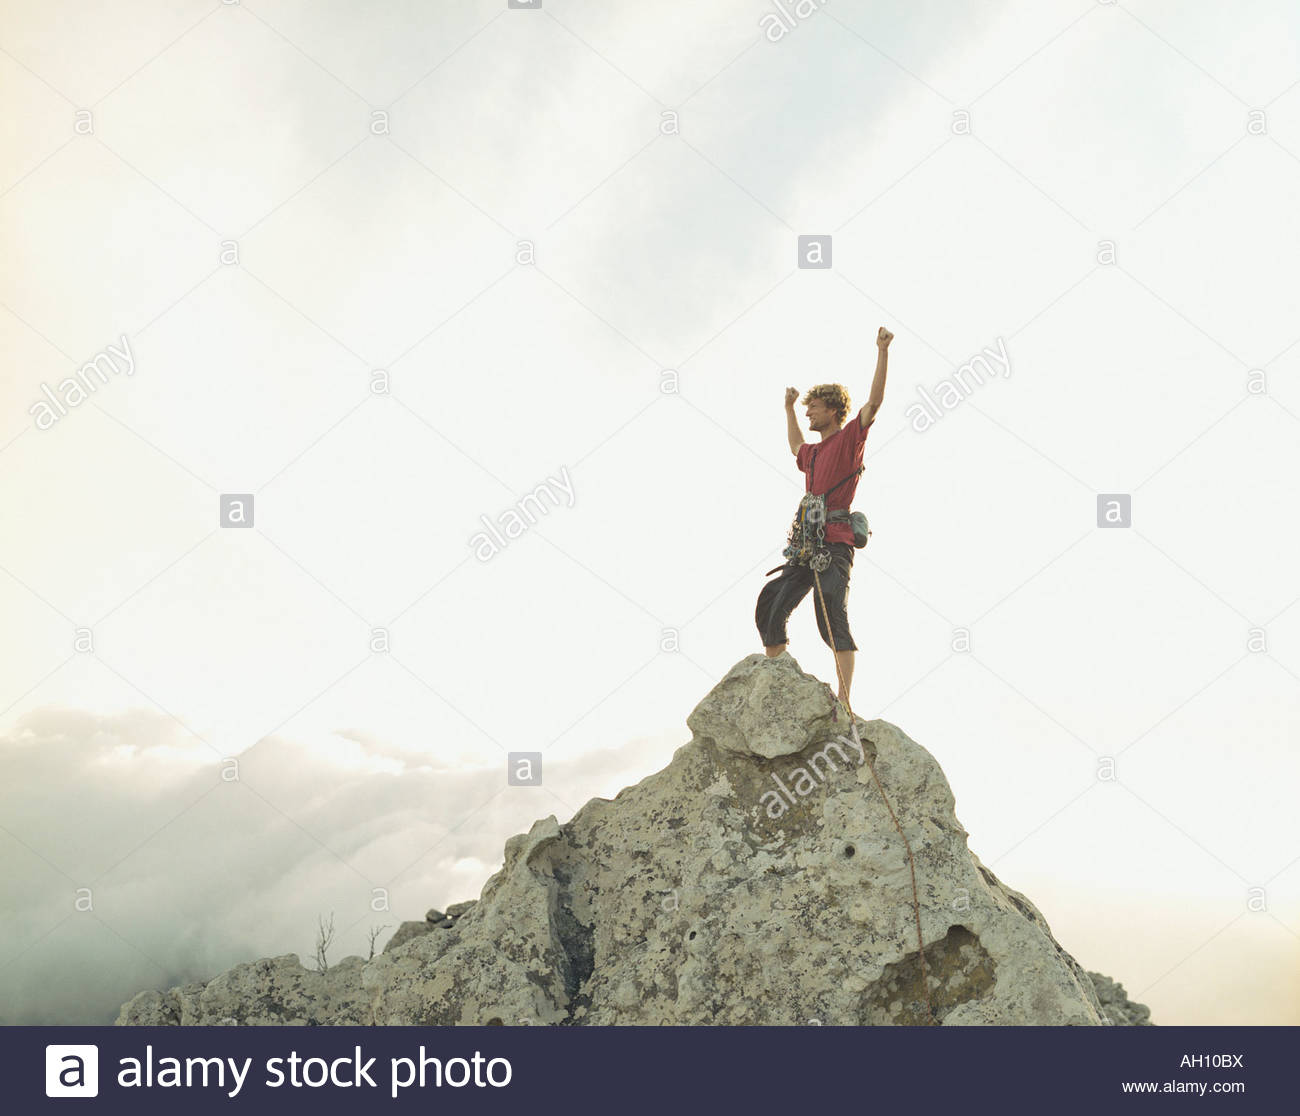 A climber at the top of a mountain victorious - Stock Image